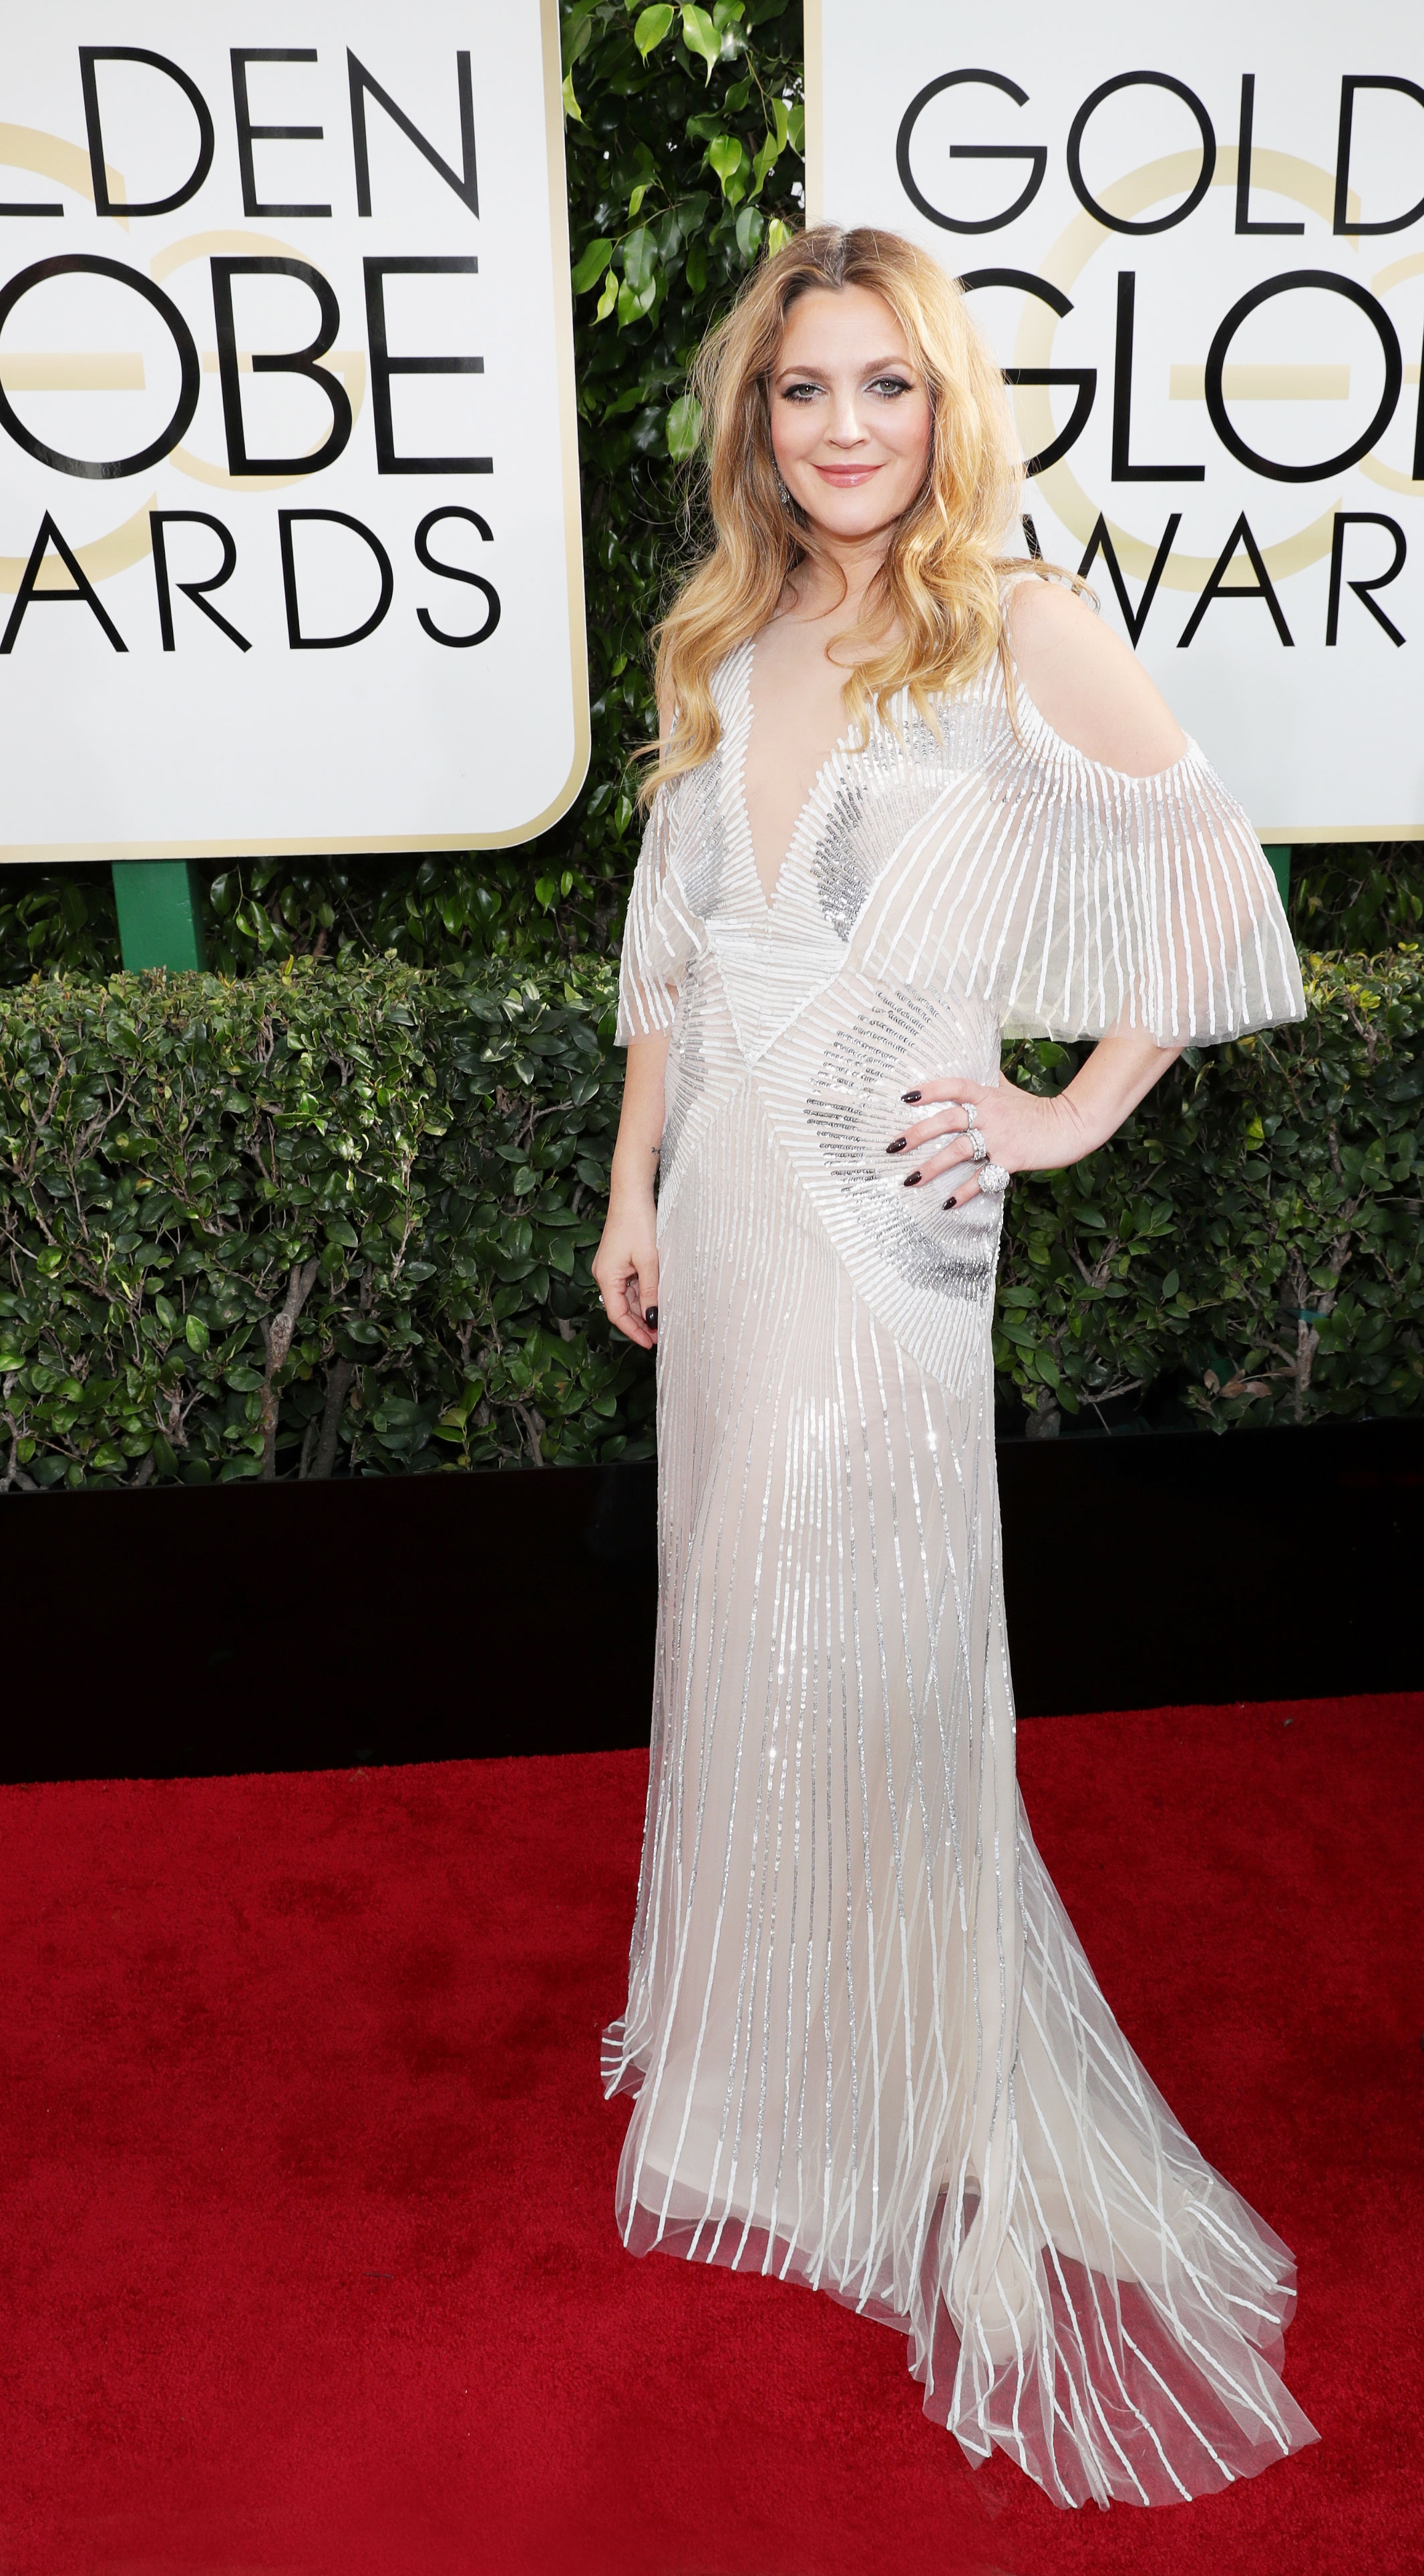 "Drew Barrymore's Body Through the Years - Diet changes helped the actress (at the 2017 Golden Globes) drop about 20 pounds in 2017. ""I feel really great. I followed [nutritionist] Kimberly Snyder's methods, but I added some protein like fish and chicken since she's all vegetarian or vegan,"" she told Us at the time."